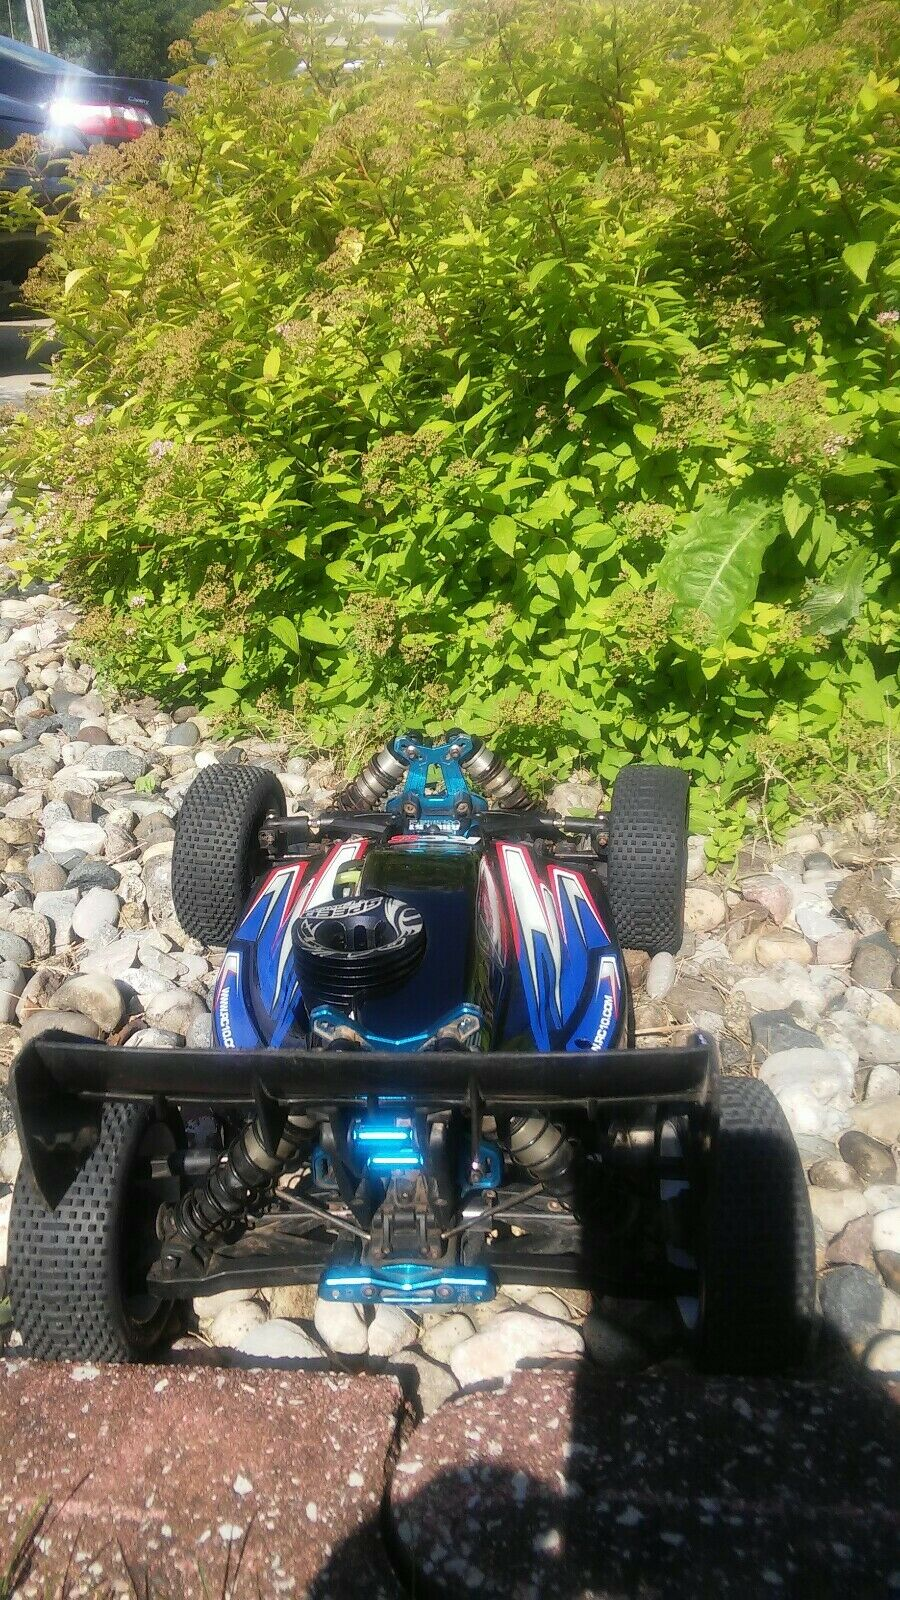 RTR TEAM ASSOCIATED RC8 NITRO GAS BUGGY 4x4 4WD OS MAX